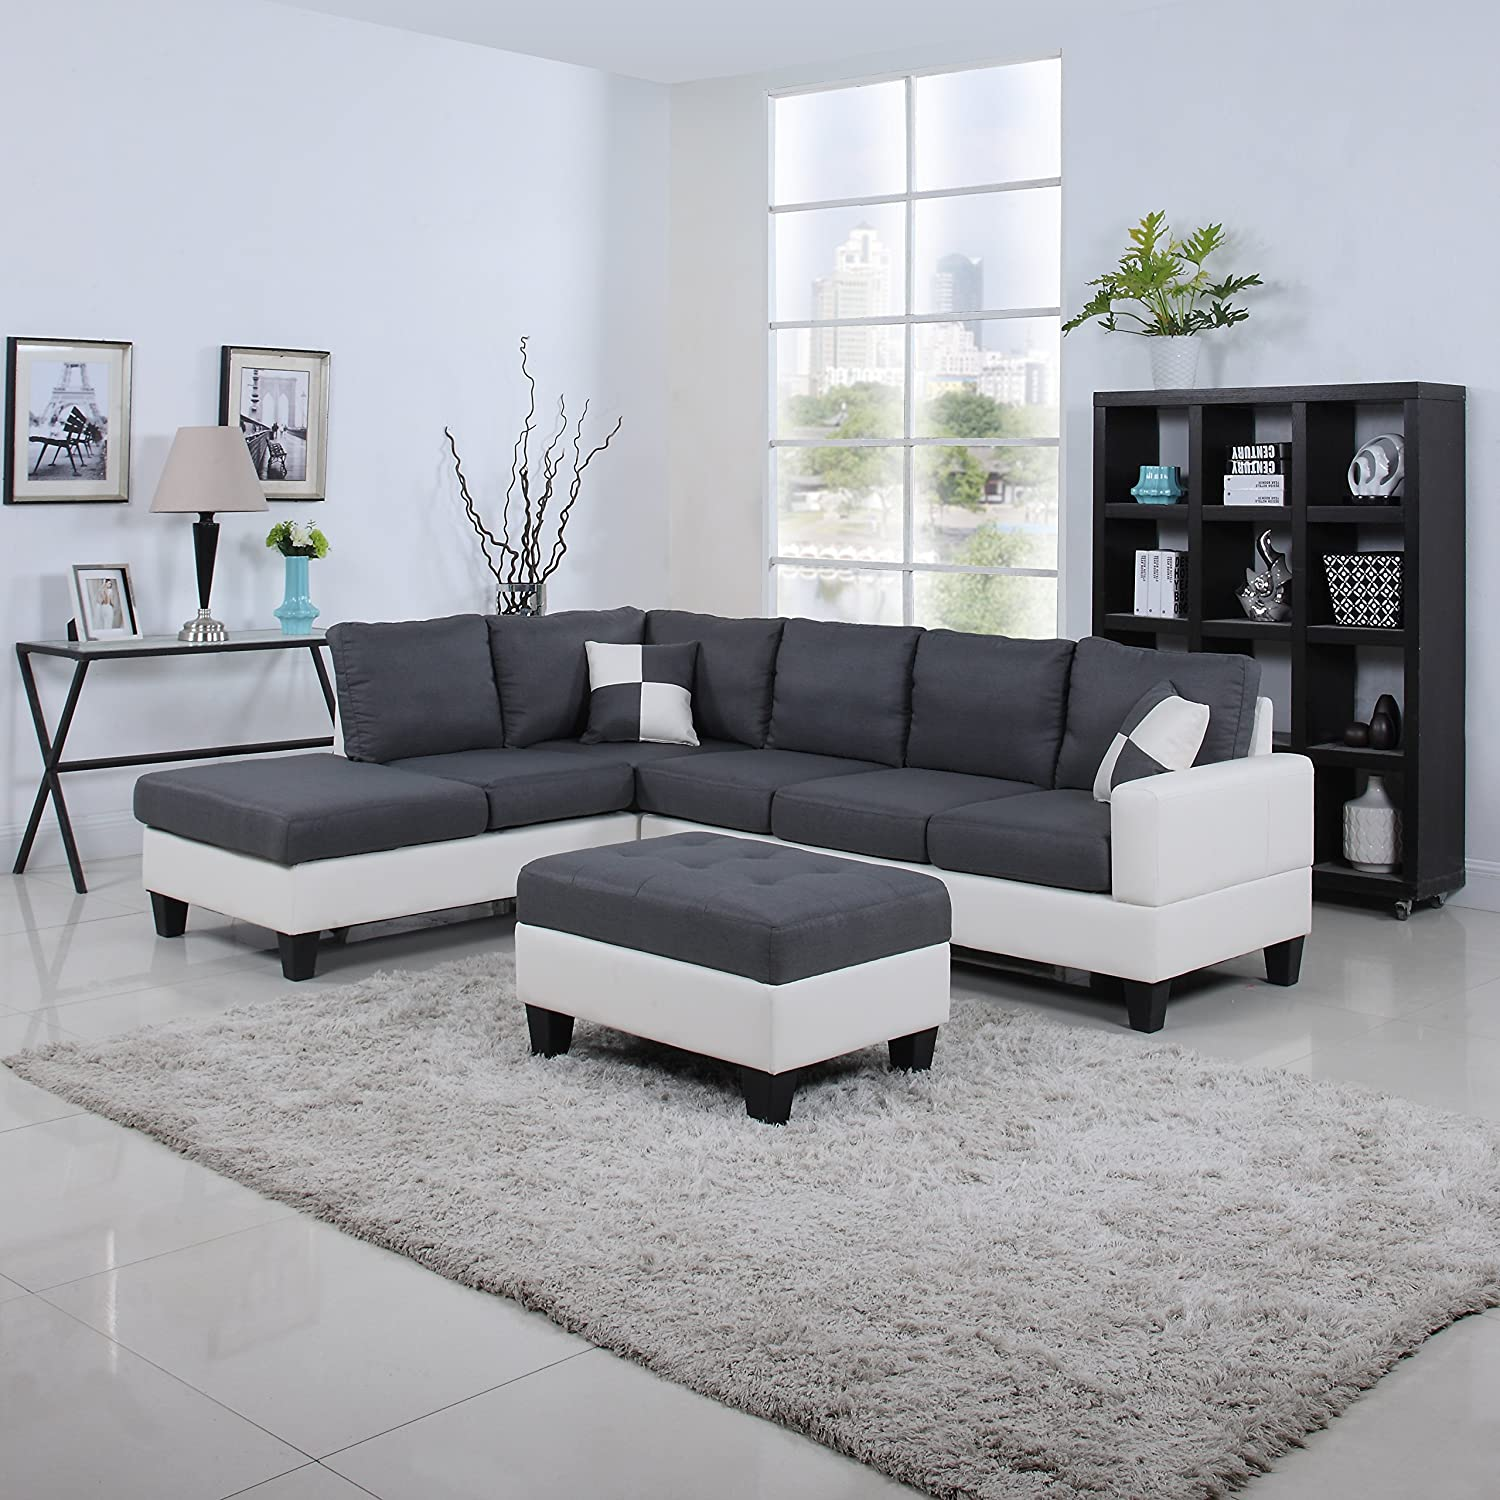 Cheap Sectional Couches For Sale